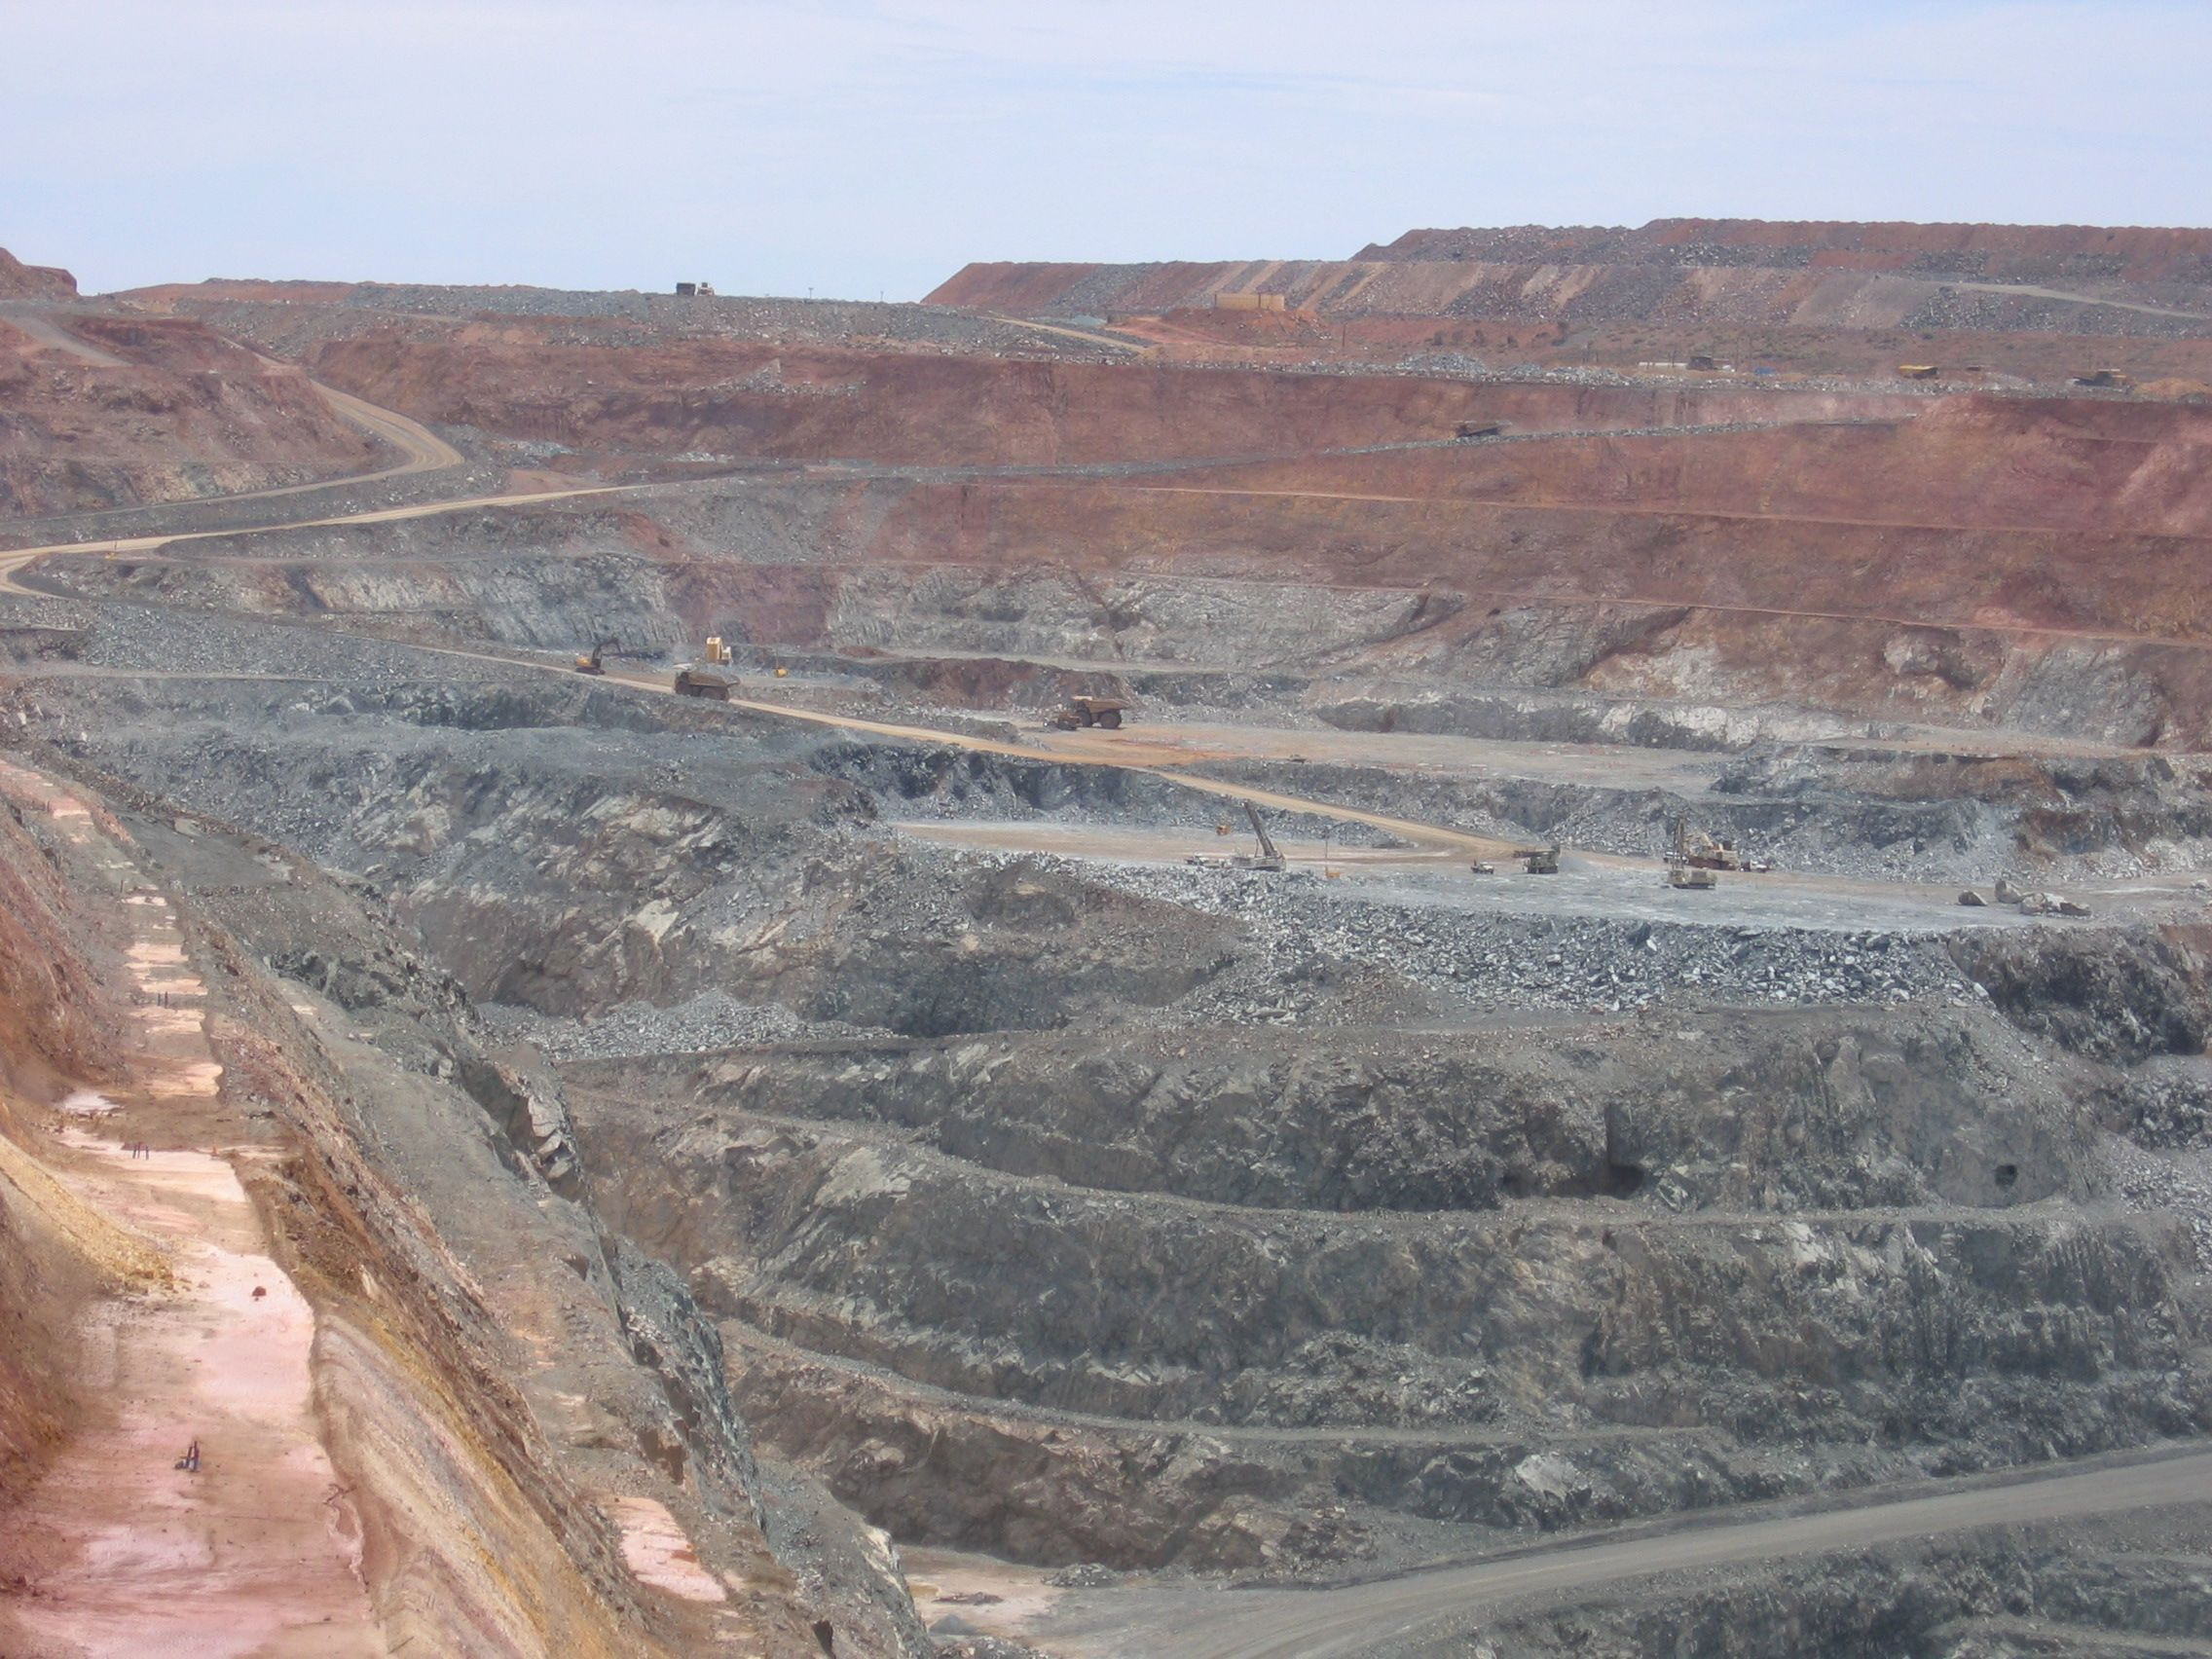 The Kalgoorlie super pit gold mine  Outback Australia